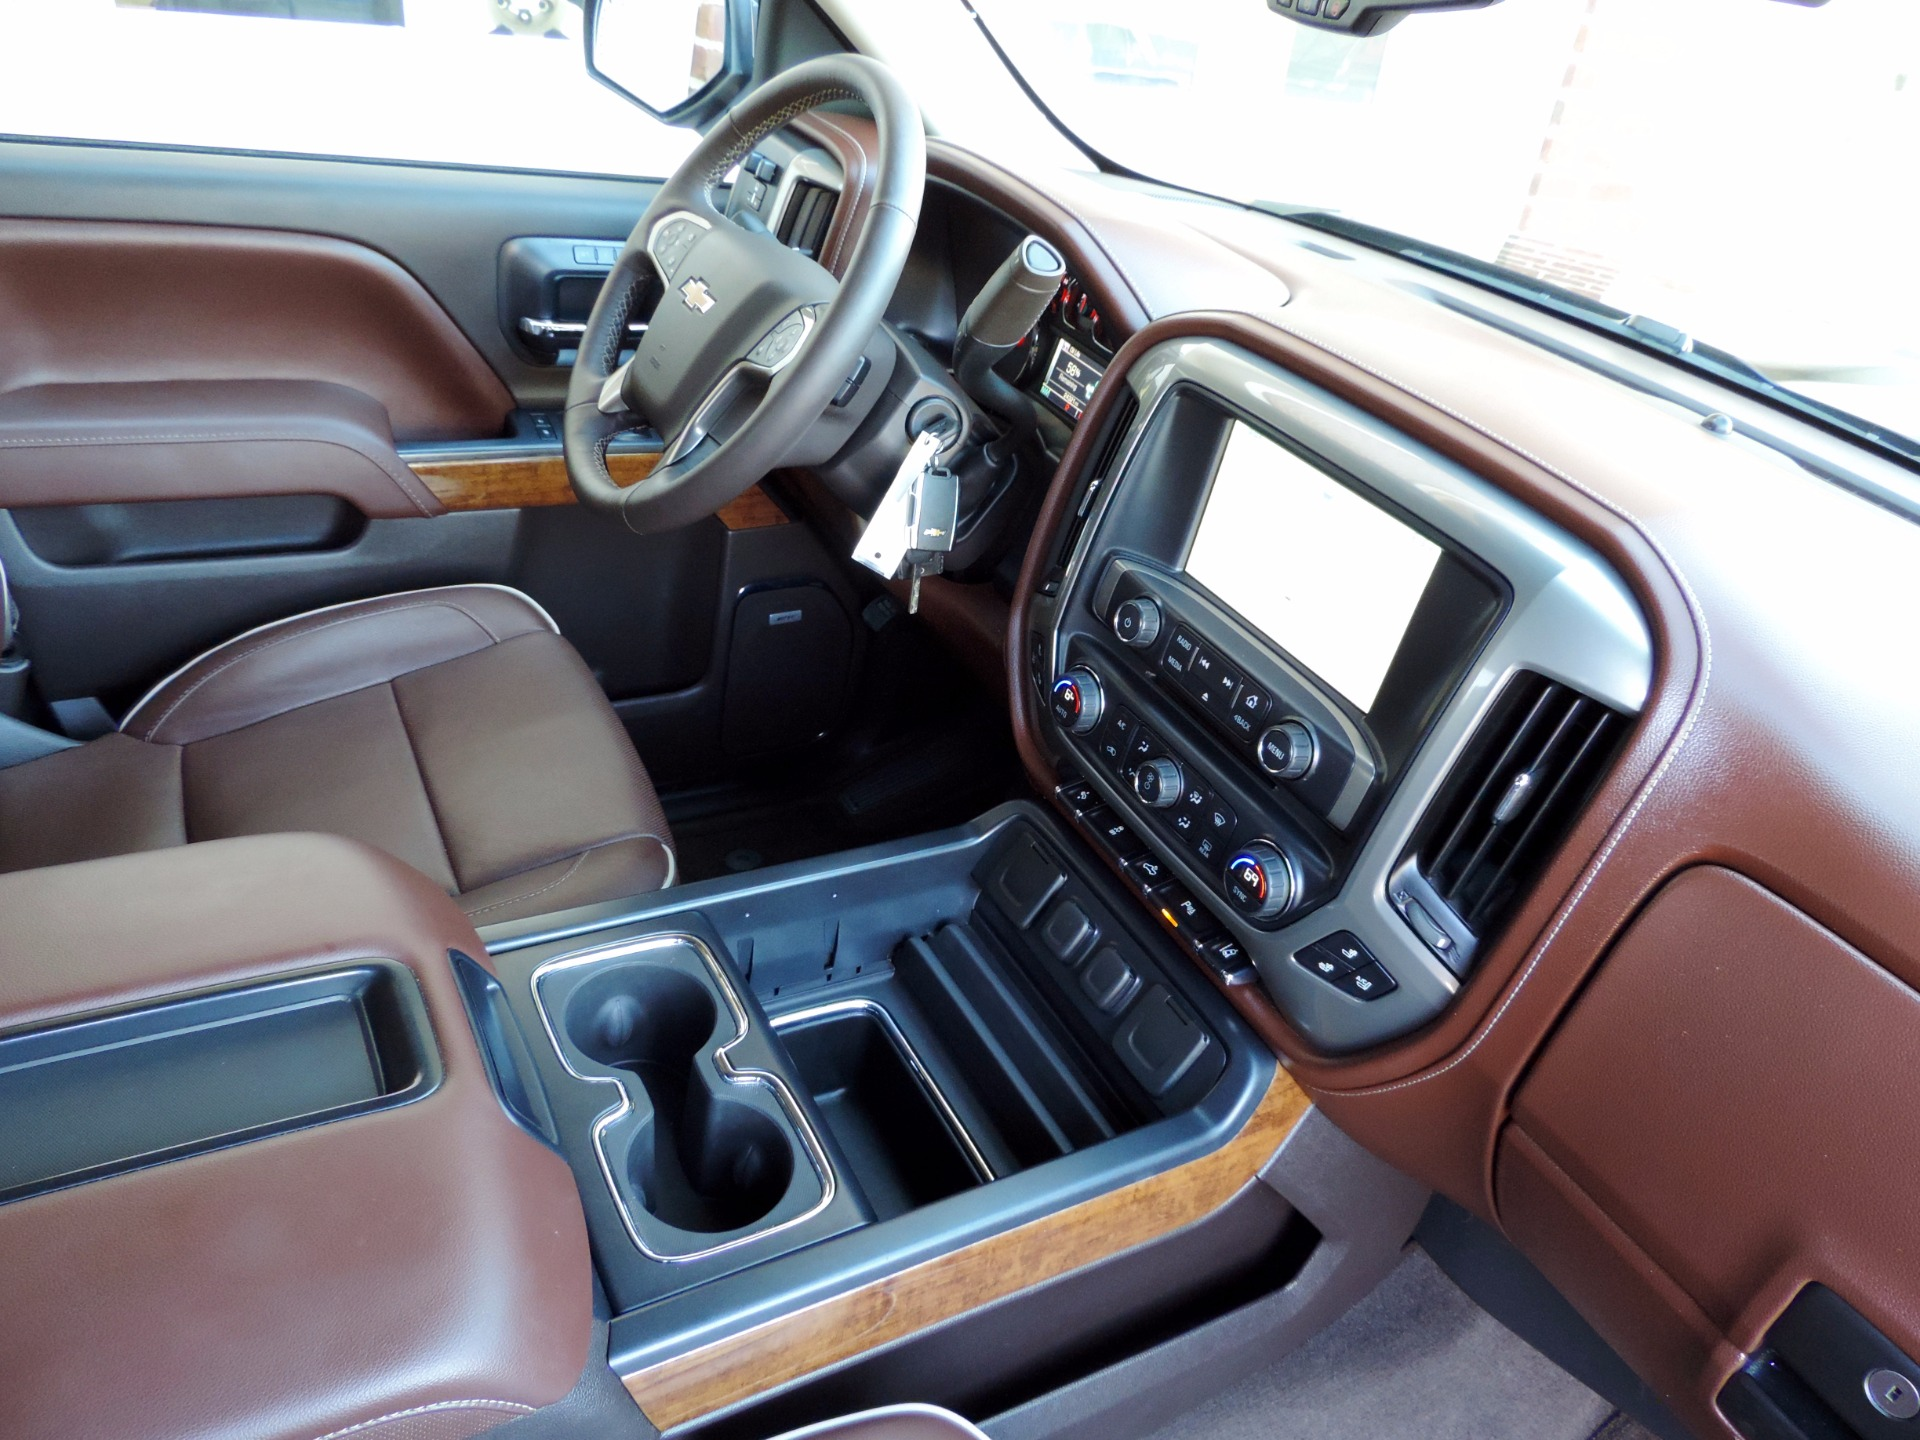 2015 Chevrolet Silverado 1500 High Country Stock 480322 For Sale Chevy Center Console Used